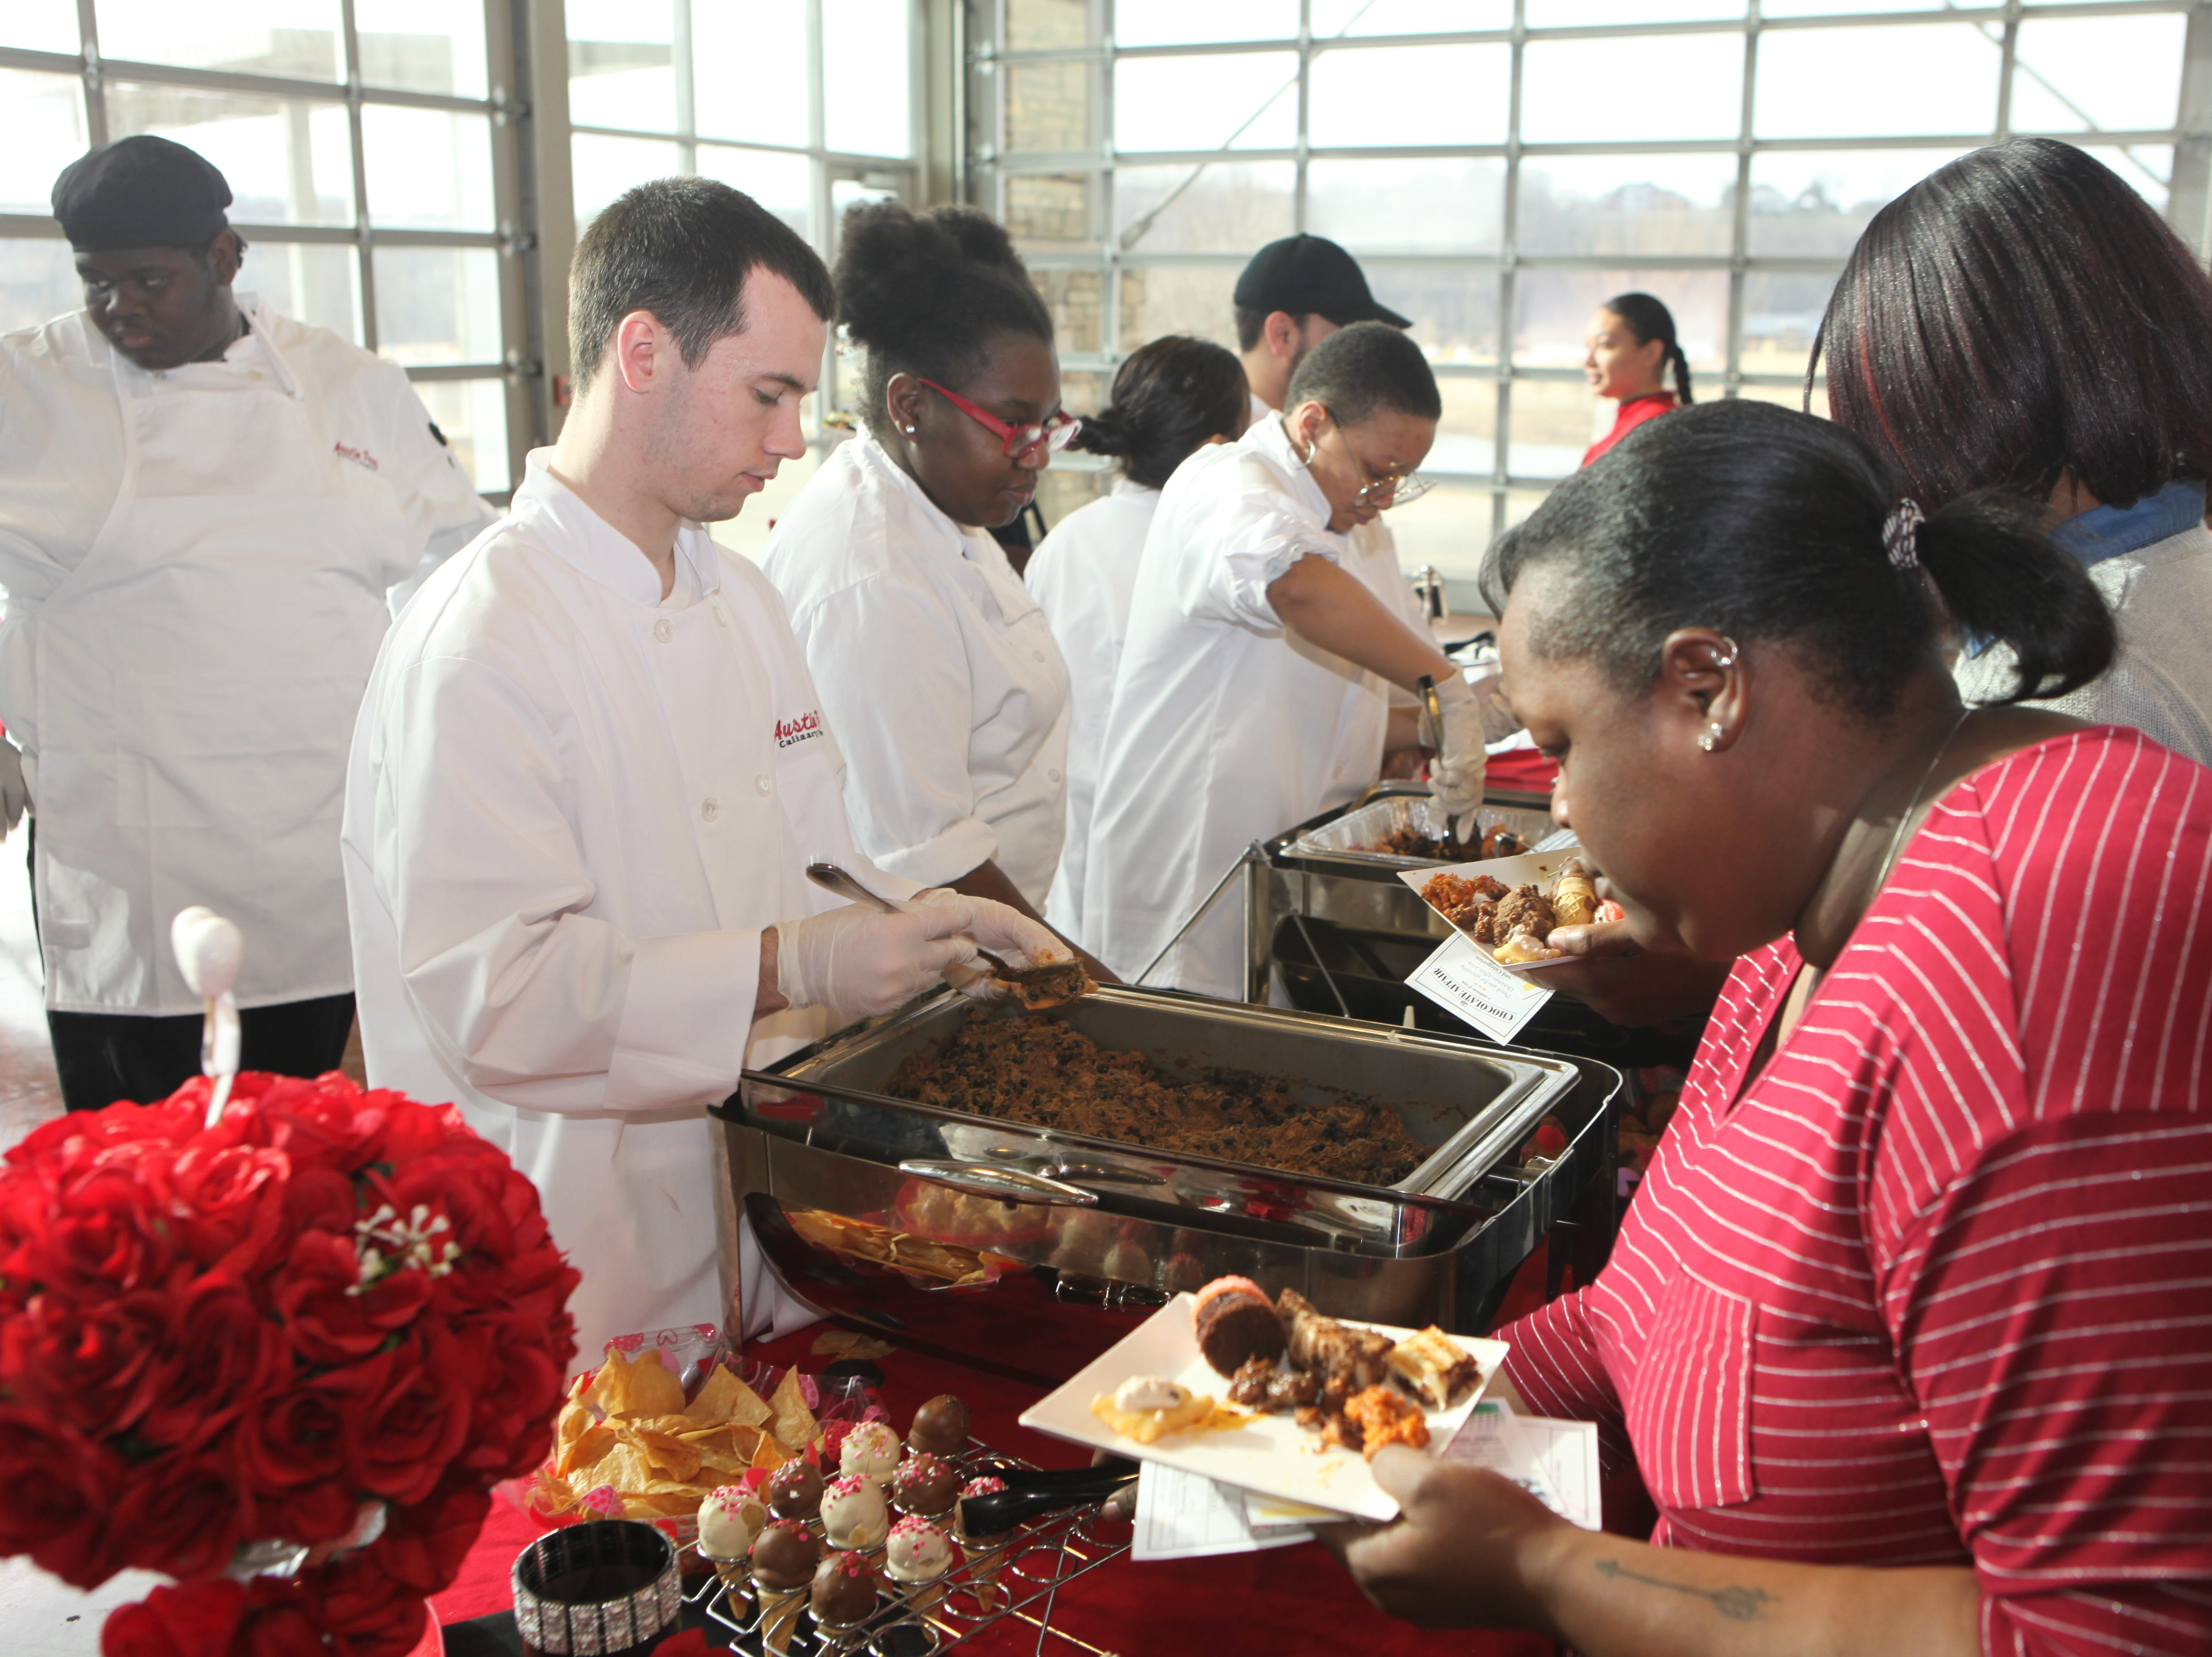 Students from the APSU Culinary Arts Program offered a variety of sweet and savory items during the 7th Annual Chocolate Affair at Wilma Rudolph Event Center Saturday, February 2, 2019 . The sold-out event saw hundreds of guests enjoying chocolate creations from more than a dozen local and national vendors.